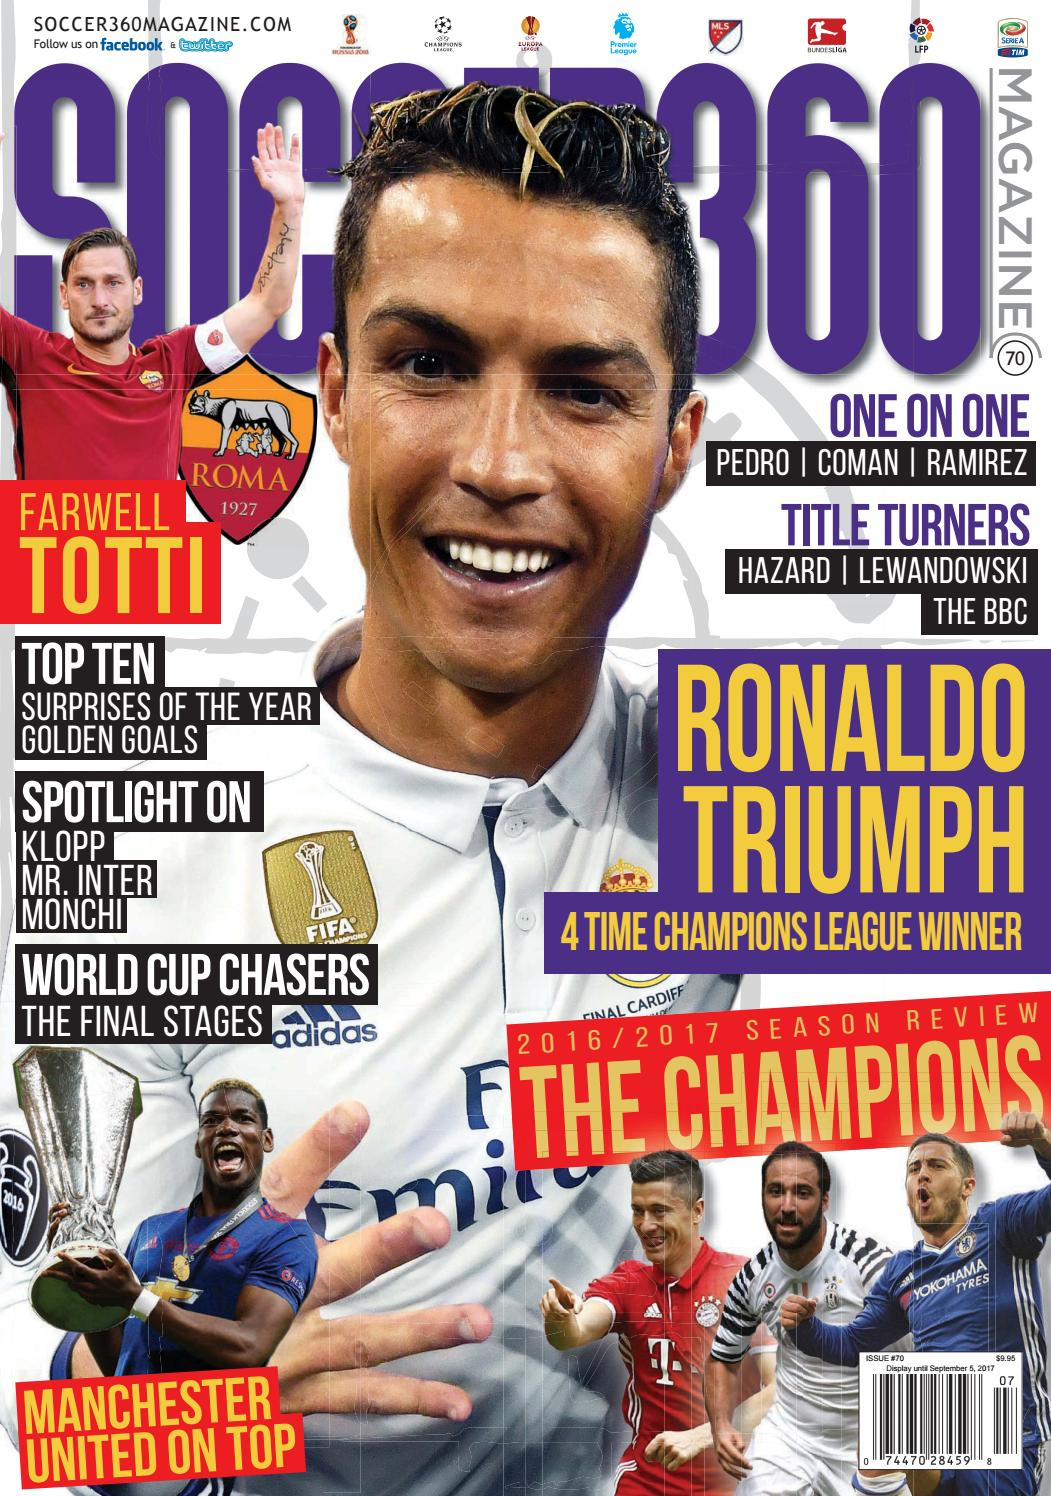 9dd4287f47e Soccer 360 Magazine Issue 70 July   August 2017 by Soccer 360 Magazine -  issuu